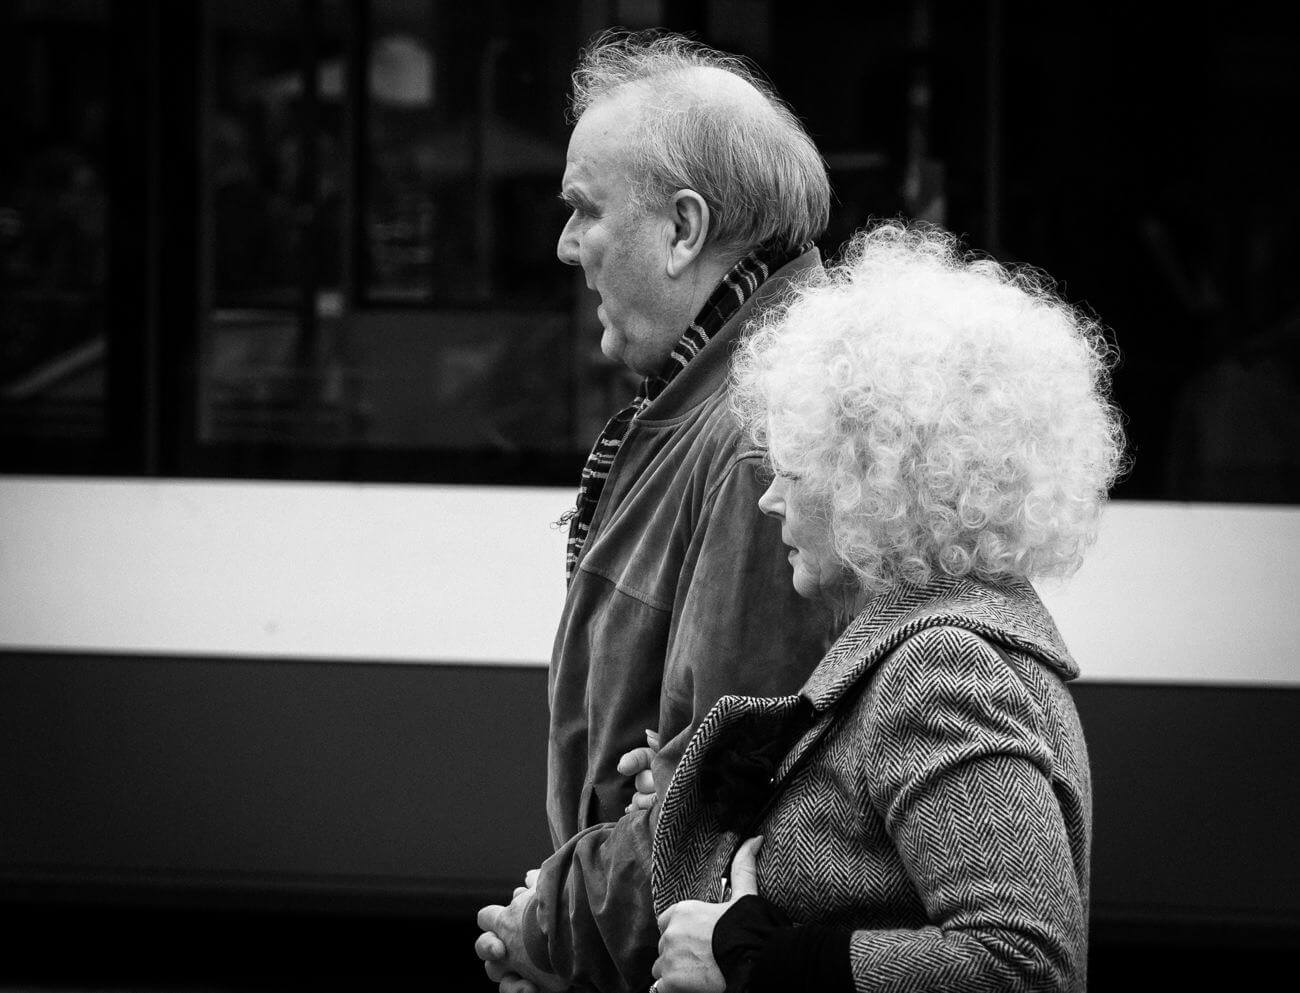 People of Amsterdam - photograph by Zed Sindelar / CuriousZed